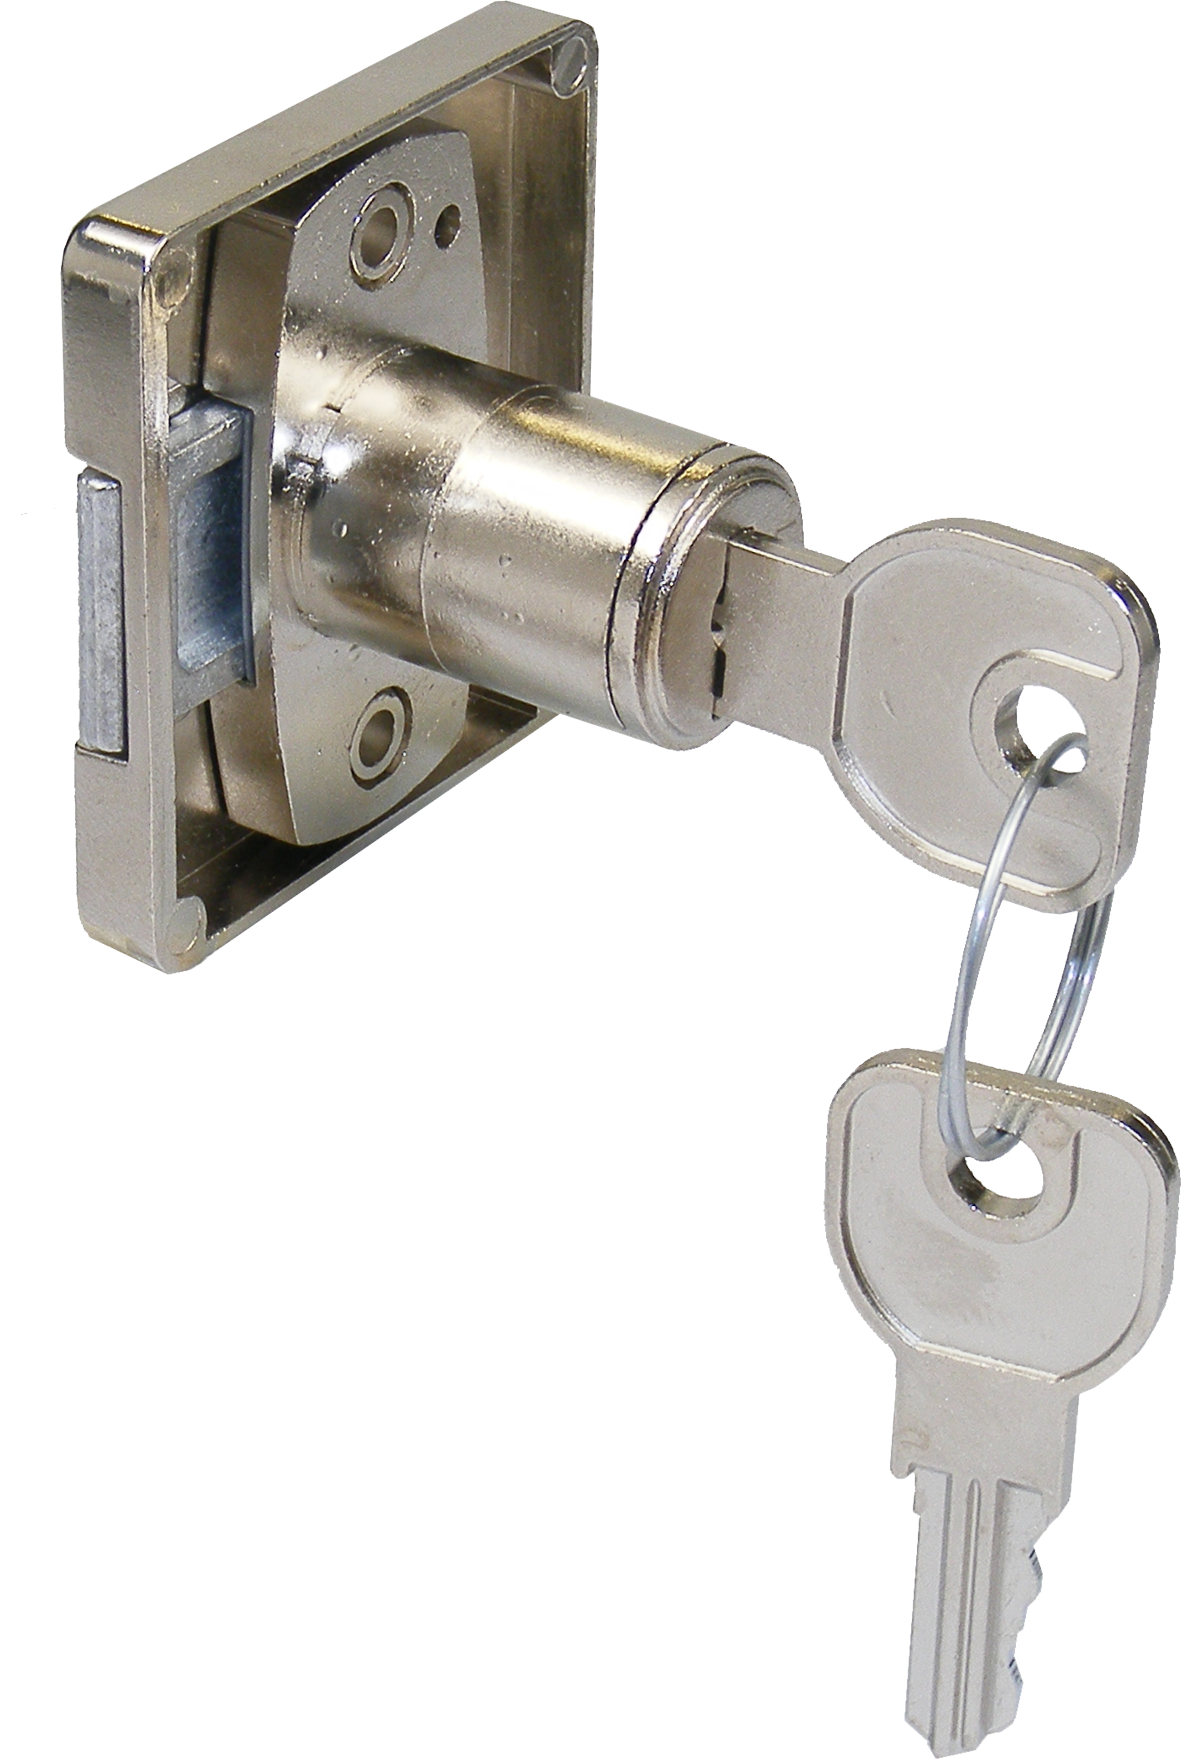 Lehmann Right Hand Square Cupboard Lock To Differ Right Hand Square Cupboard Lock To Differ Measurements Differs Range : L2501 - L2700 Right Handed Lock Non Mastered 16.5mm Diameter Each lock is available with 200 differs (non-mastered).  Each lock is supplied with 2 steel keys Manufactured by Martin Lehmann Right Hand Square Cupboard Lock To Differ Description Martin Lehmann are now producing their own version of the fixed cylinder cupboard locks to follow on from the success of the Huwil version. Built to the same high standards of the Lehmann housing range. Cupboard locks are quick and easy to install with no rebating required with the latch sliding into a groove or behind an angled striker plate